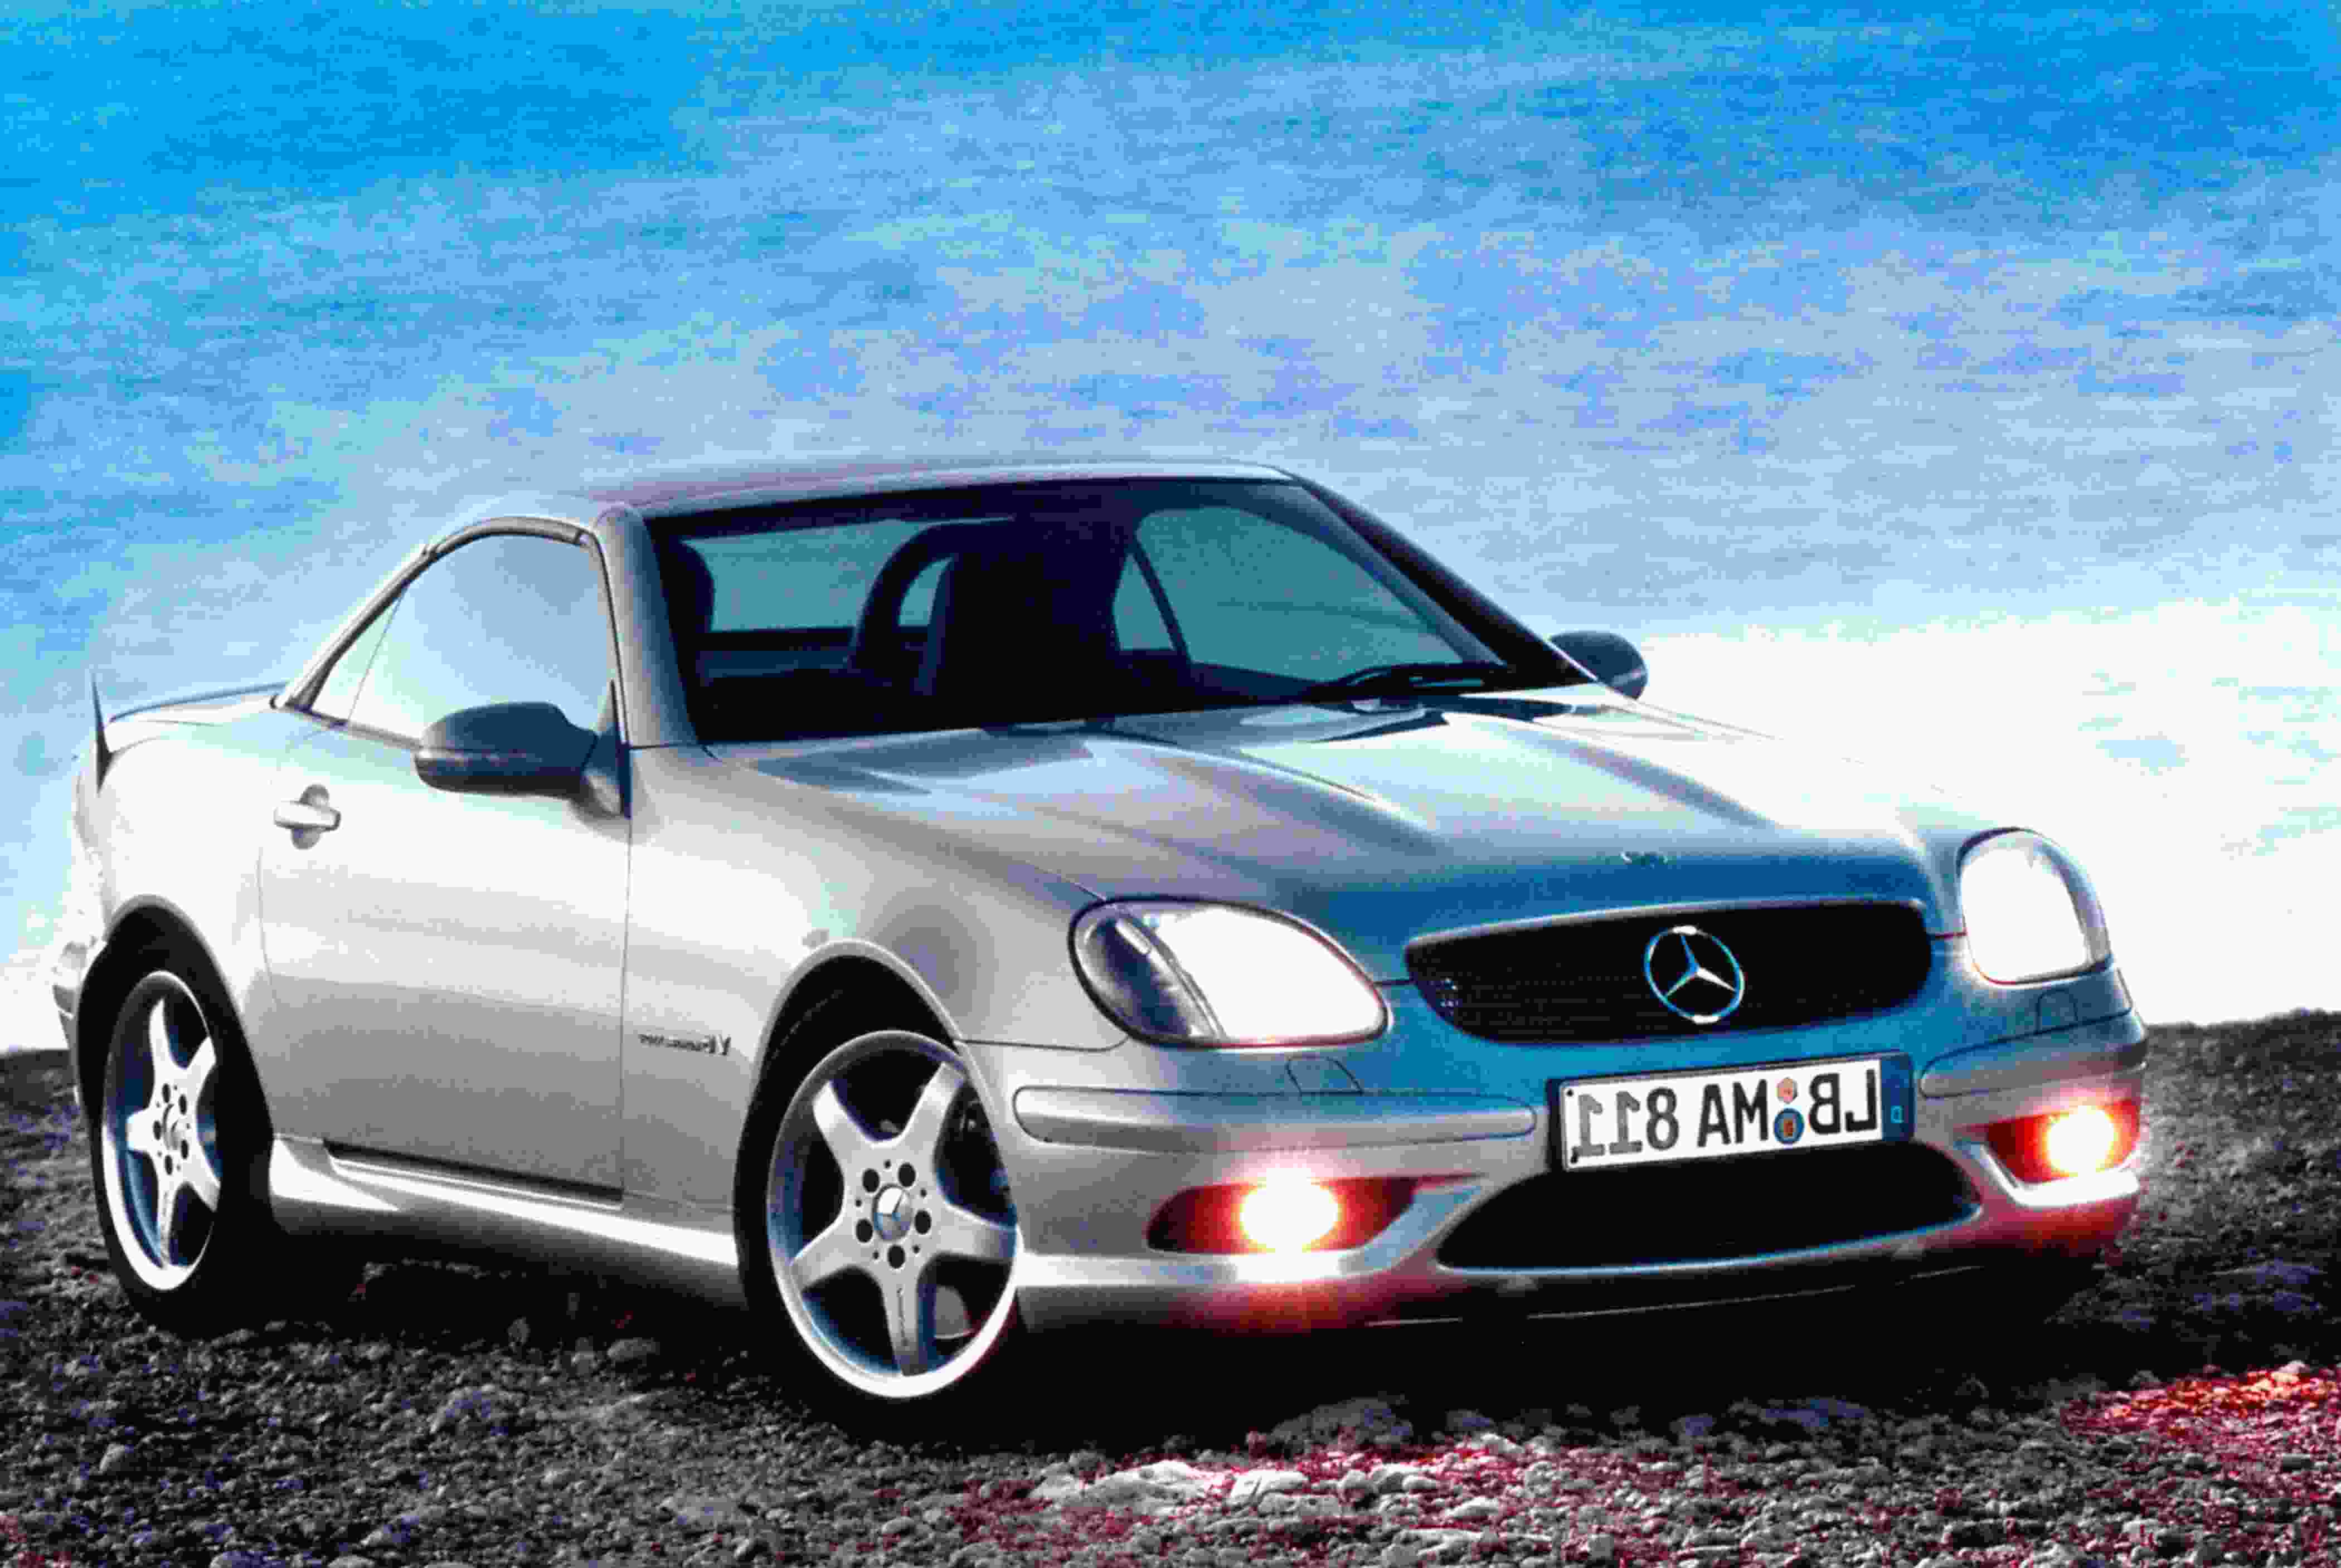 r170 amg for sale